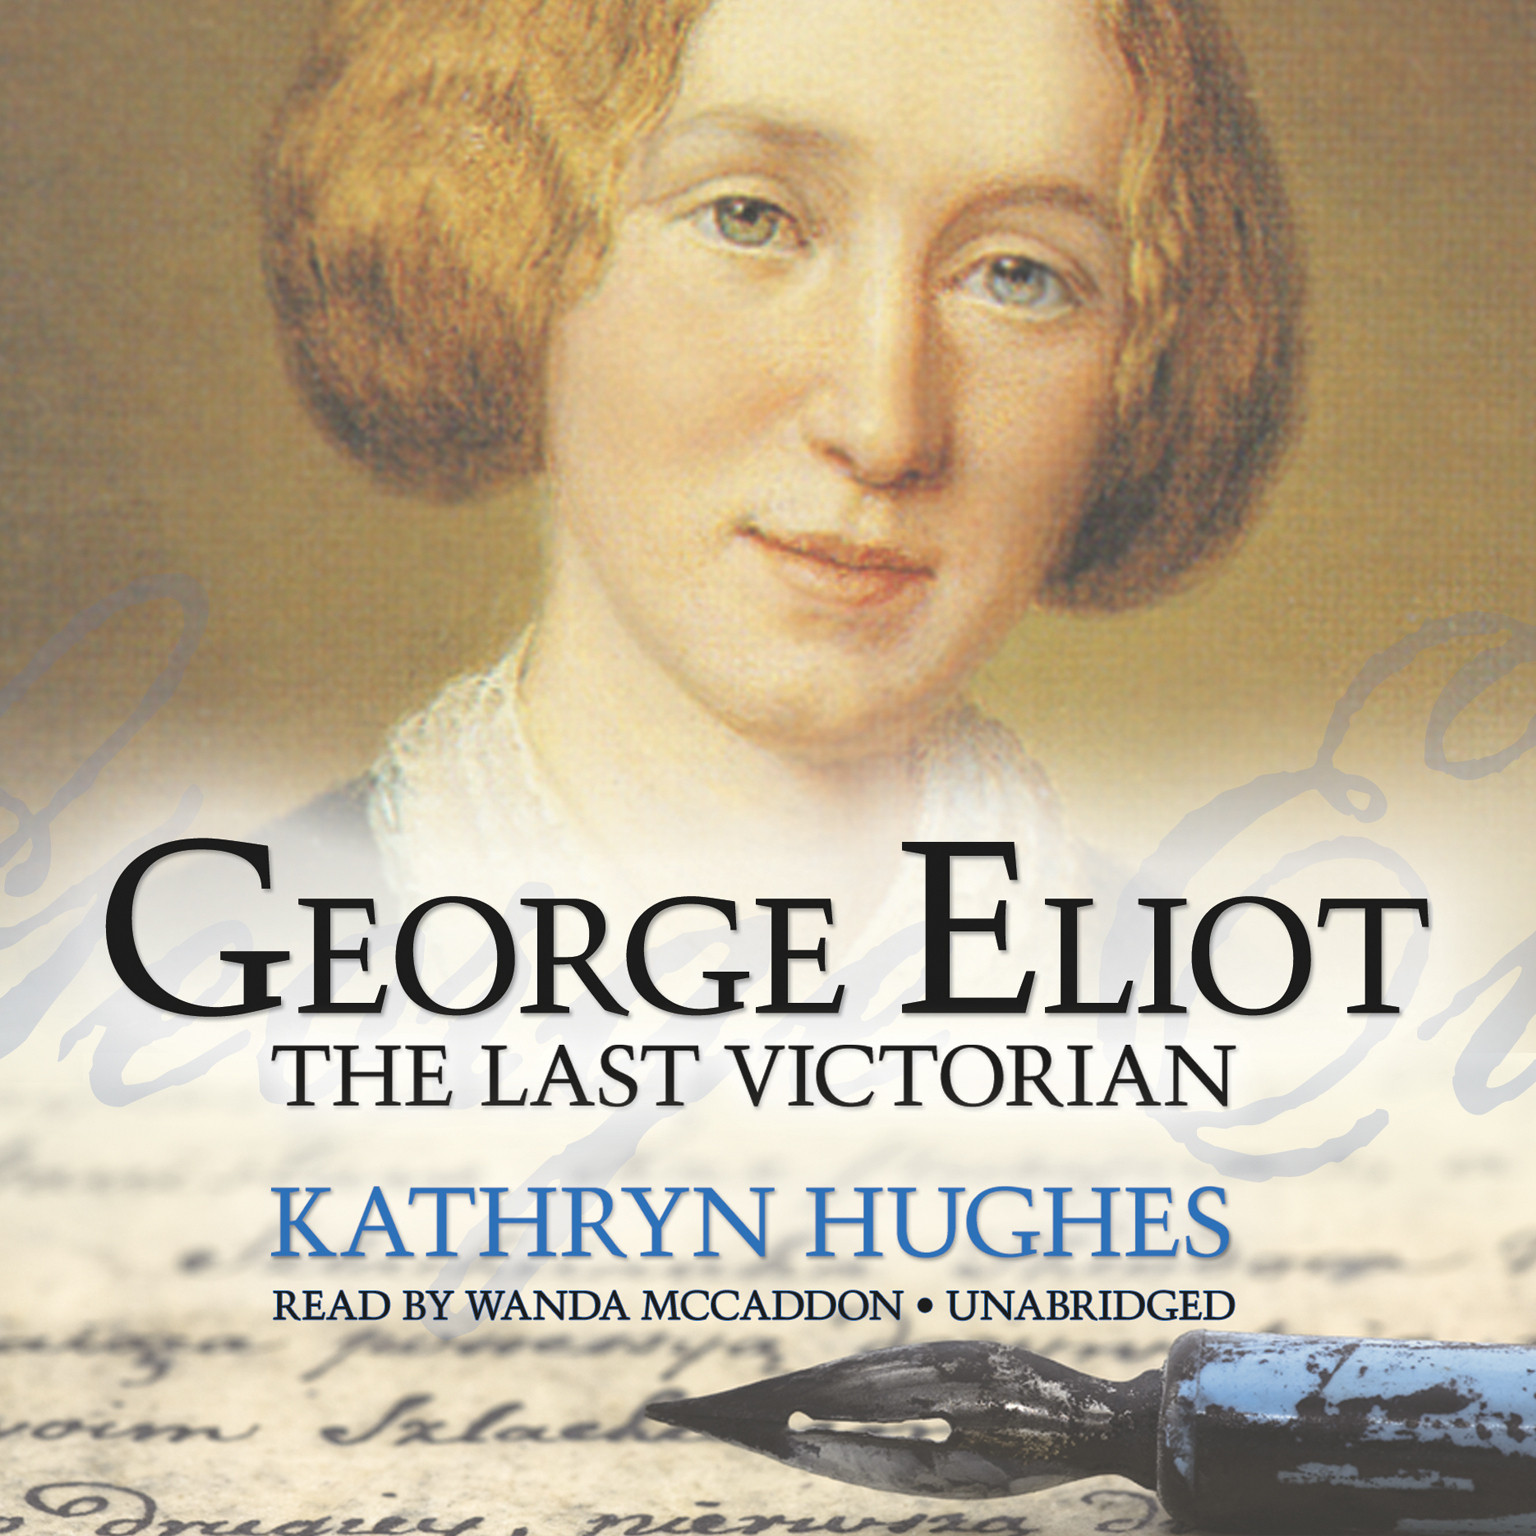 Printable George Eliot: The Last Victorian Audiobook Cover Art